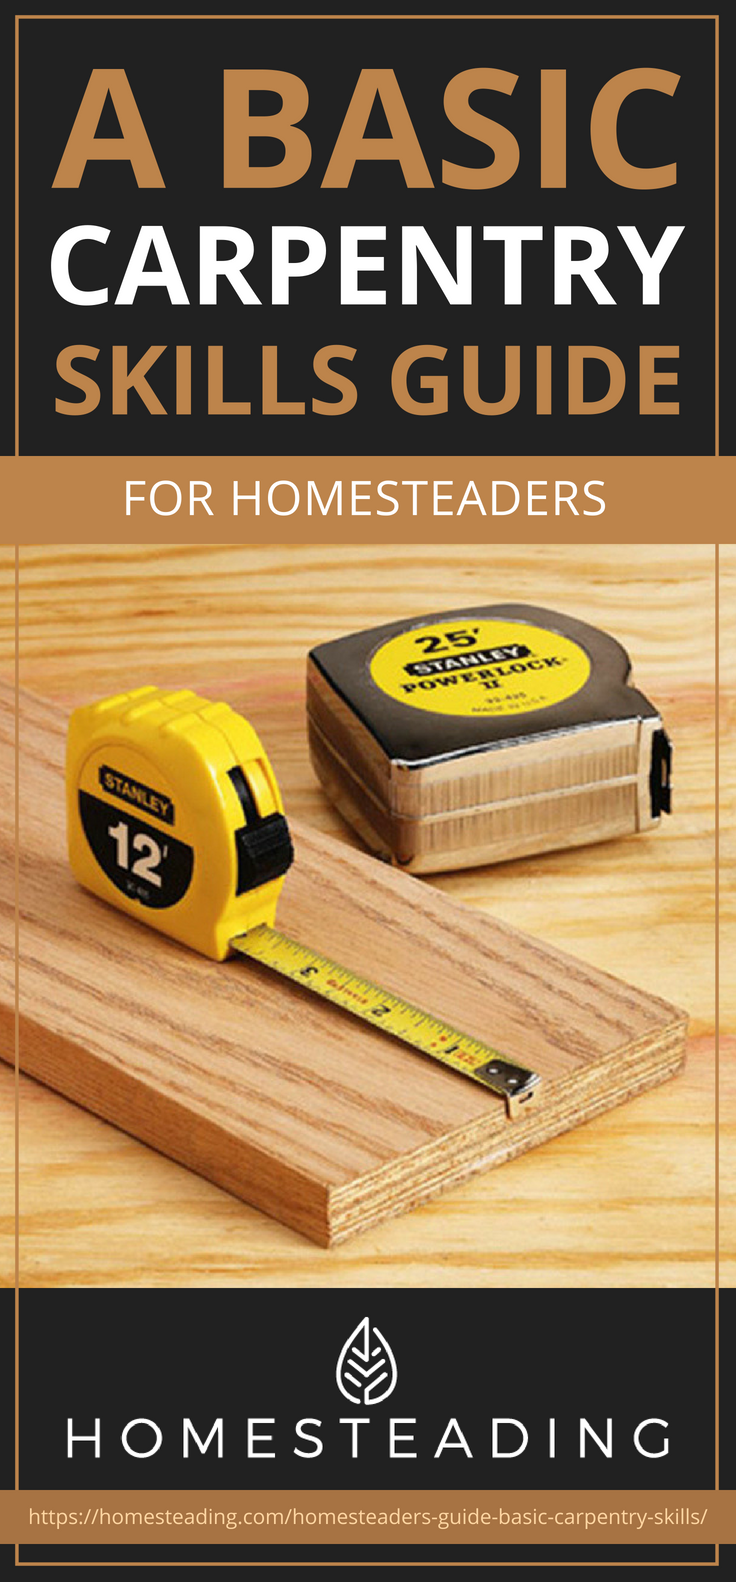 Pinterest Placard |A Basic Carpentry Skills Guide For Homesteaders